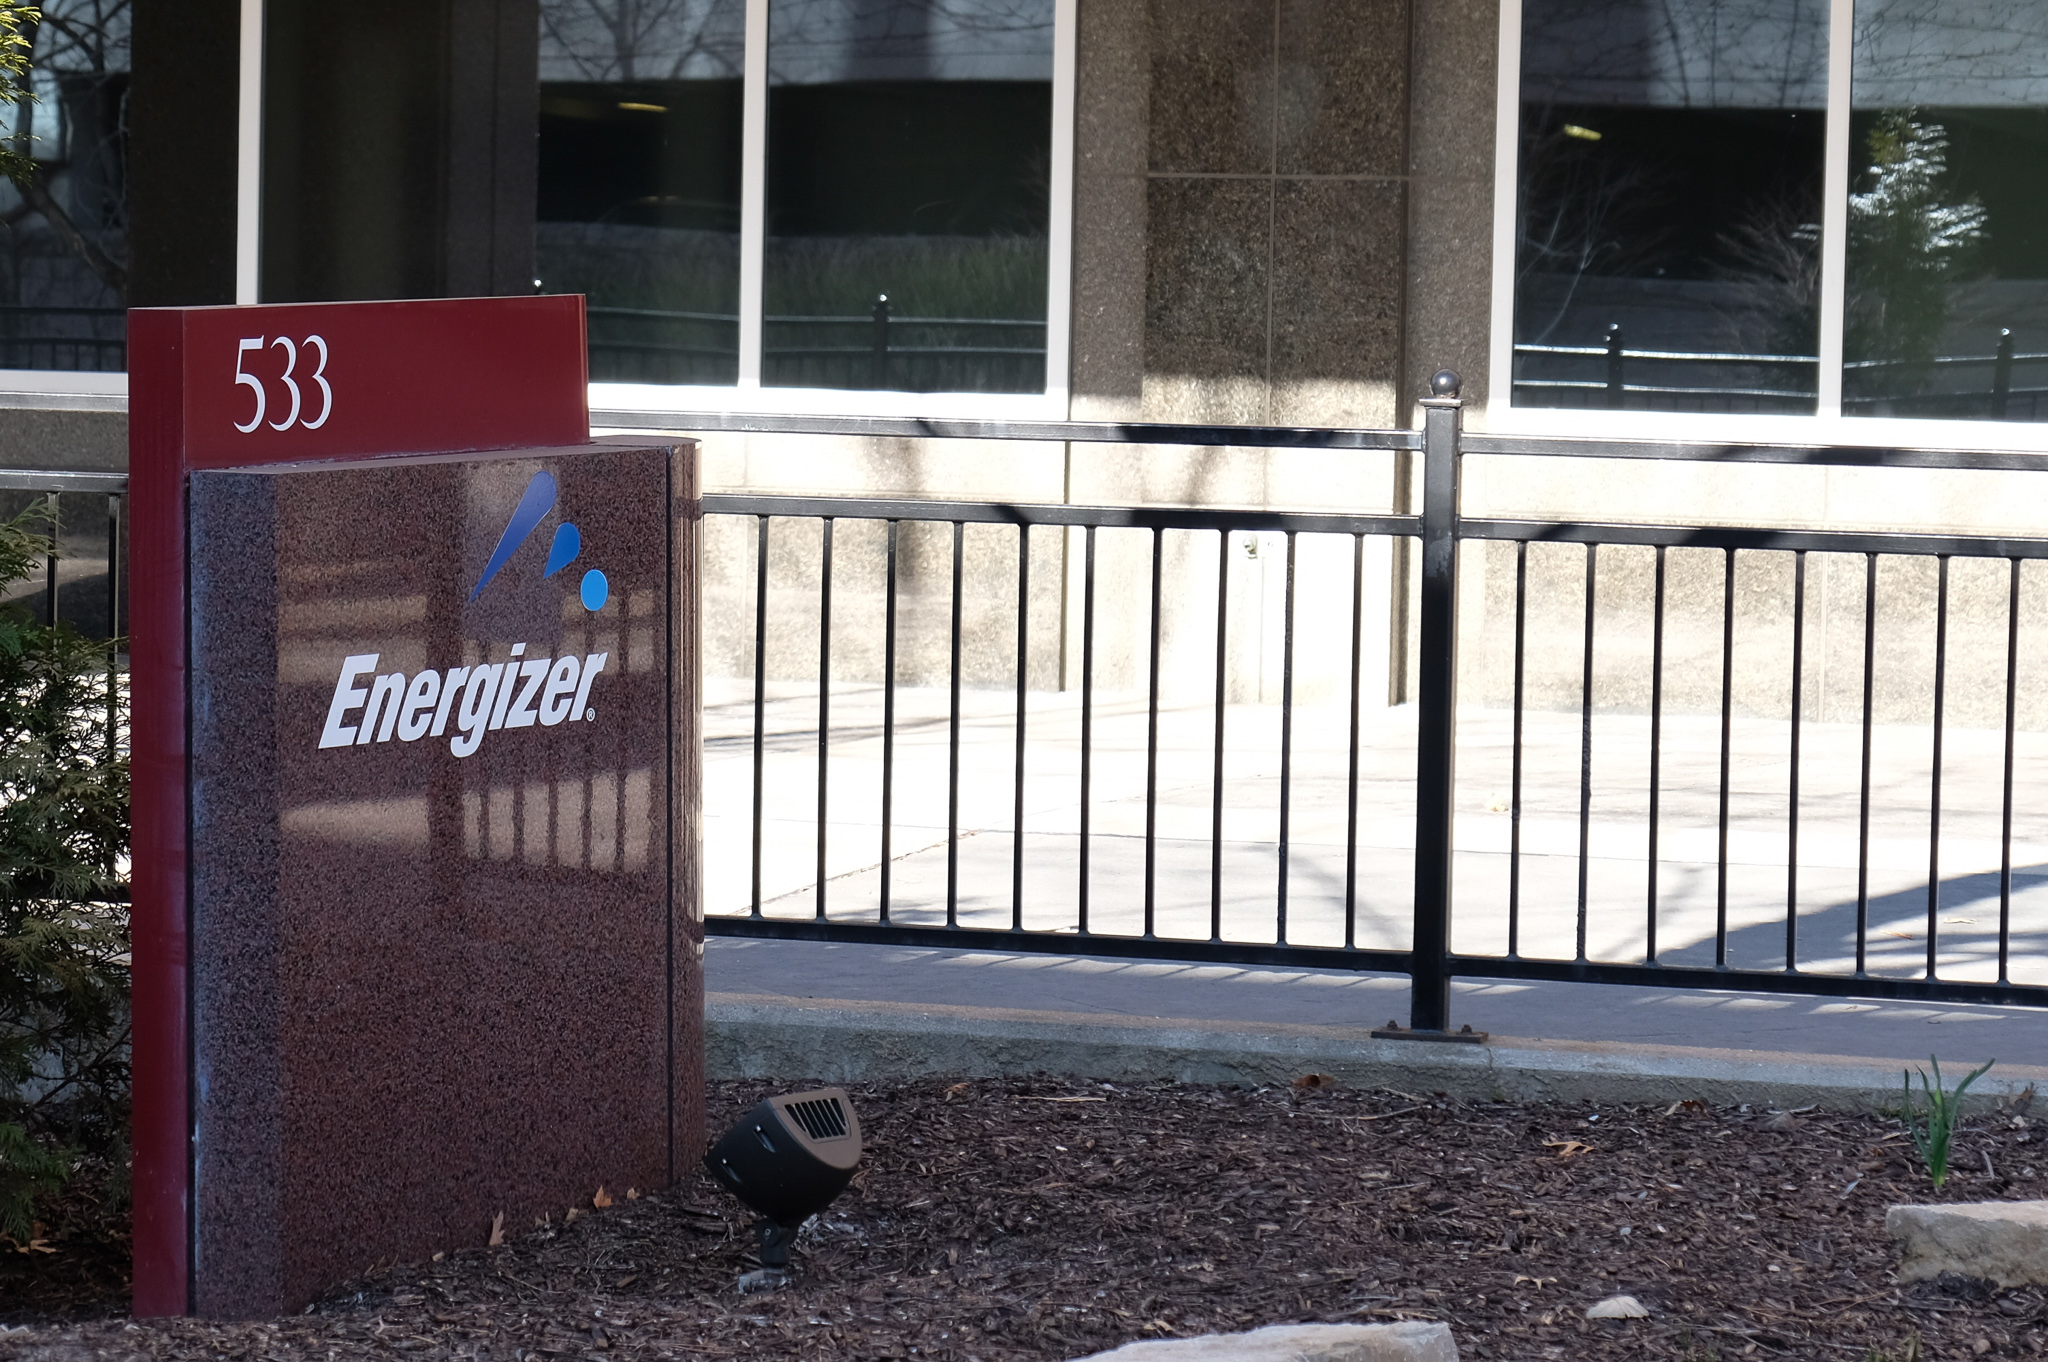 Entrance to Energizer's corporate headquarters in St. Louis, Missouri.